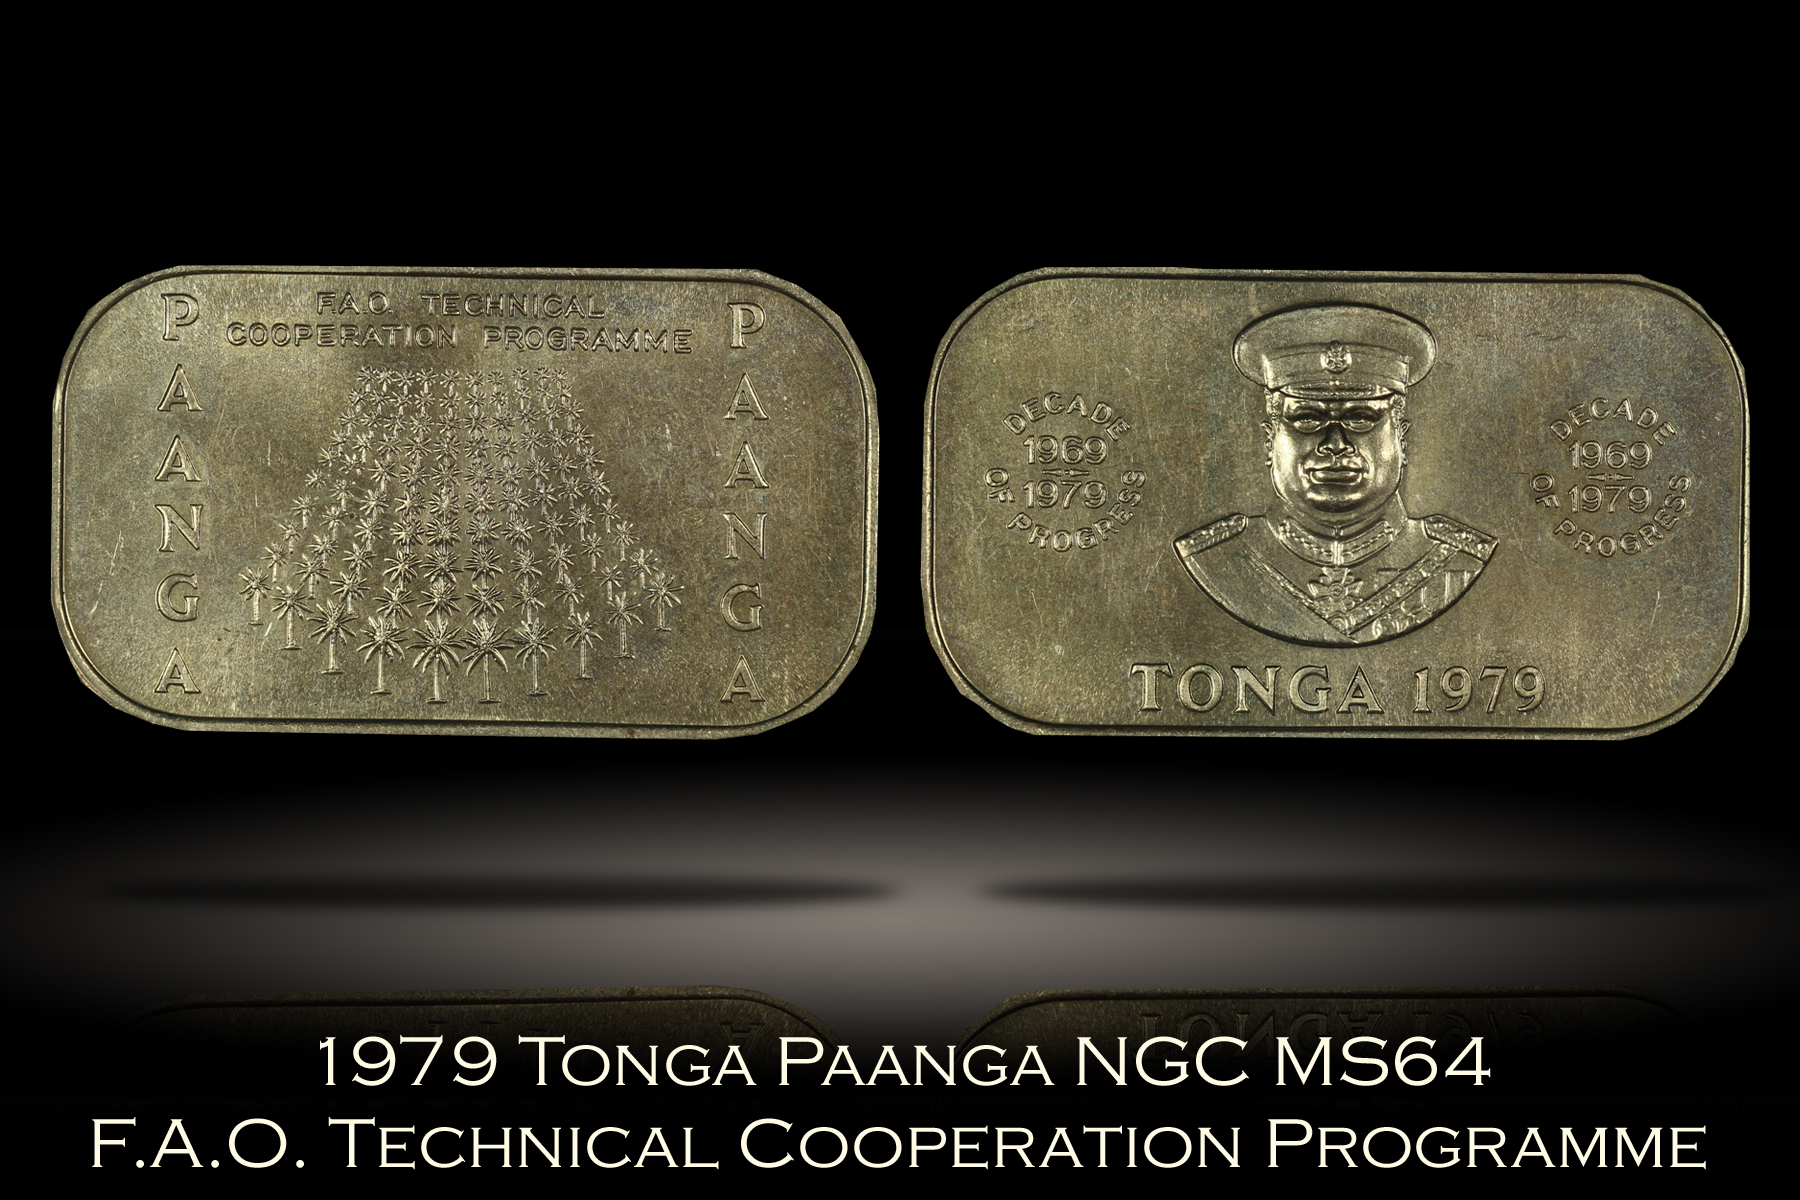 1979 Tonga Paanga Technical Cooperation Program NGC MS64